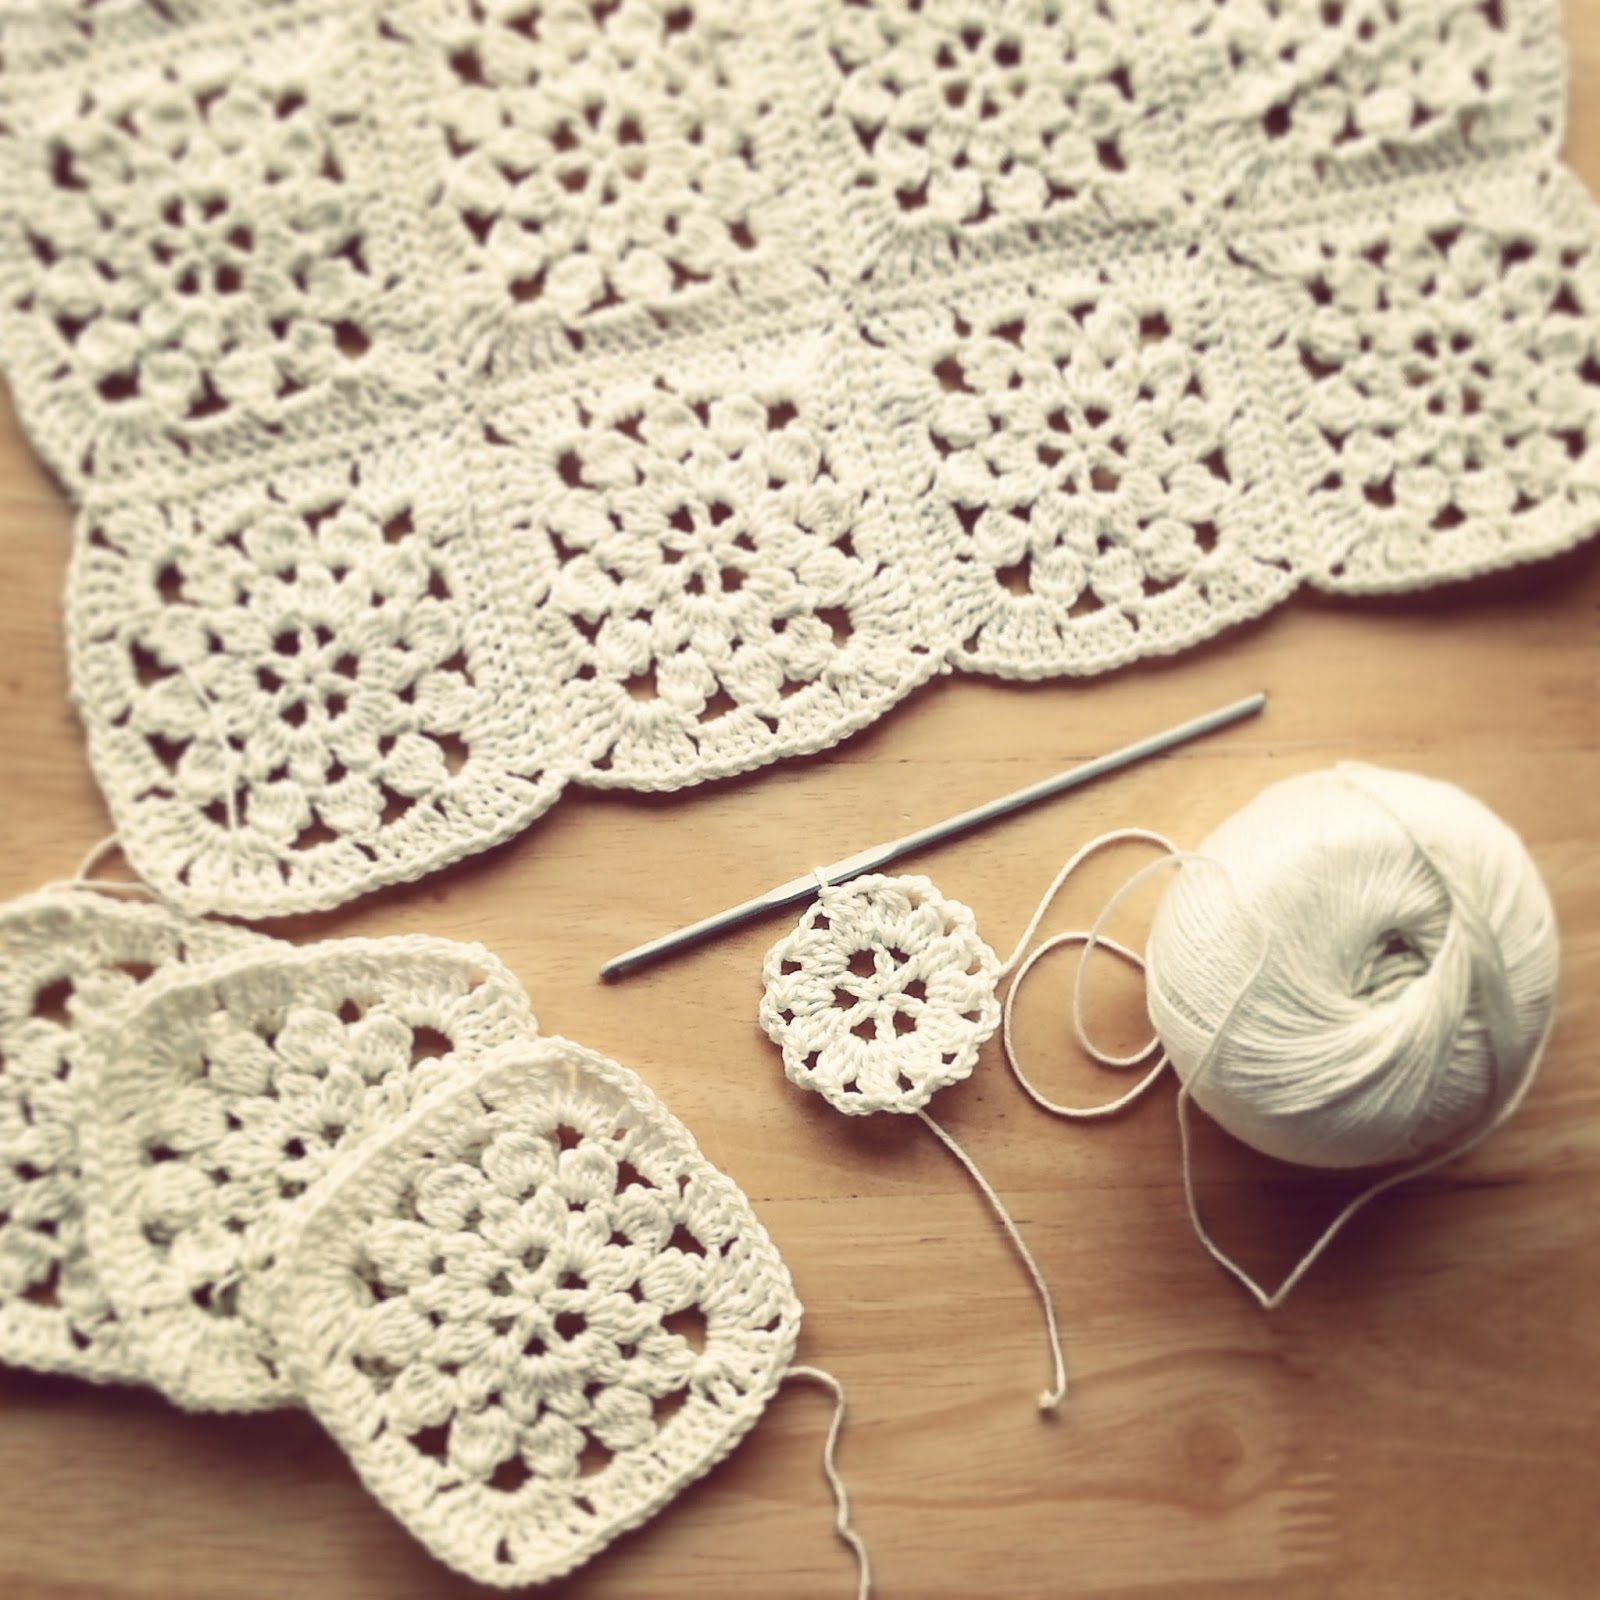 Crochet Patterns Squares : ... tonight- I wanted to show you my latest crochet works in progress